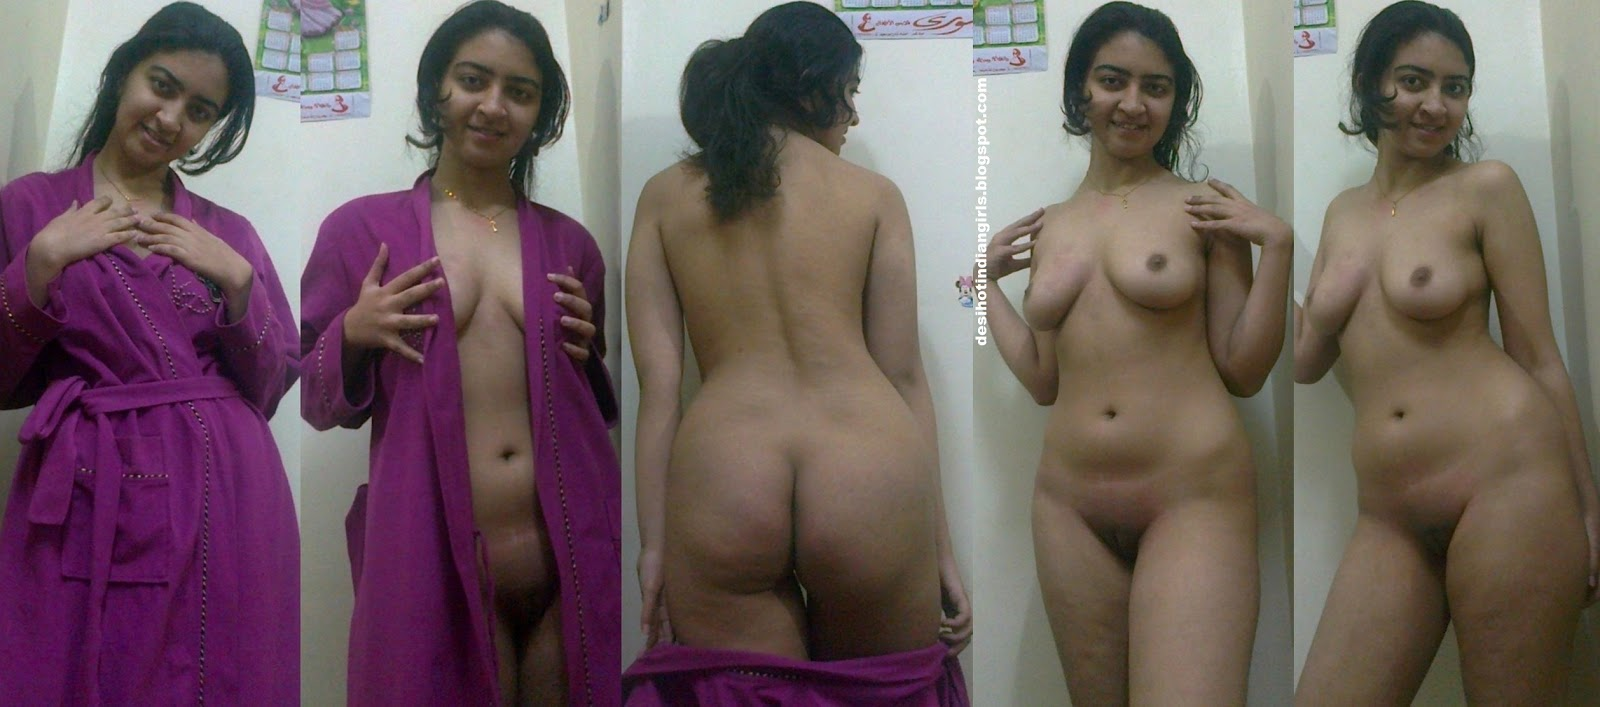 Punjabi sikh girls porn photo hardcore sex